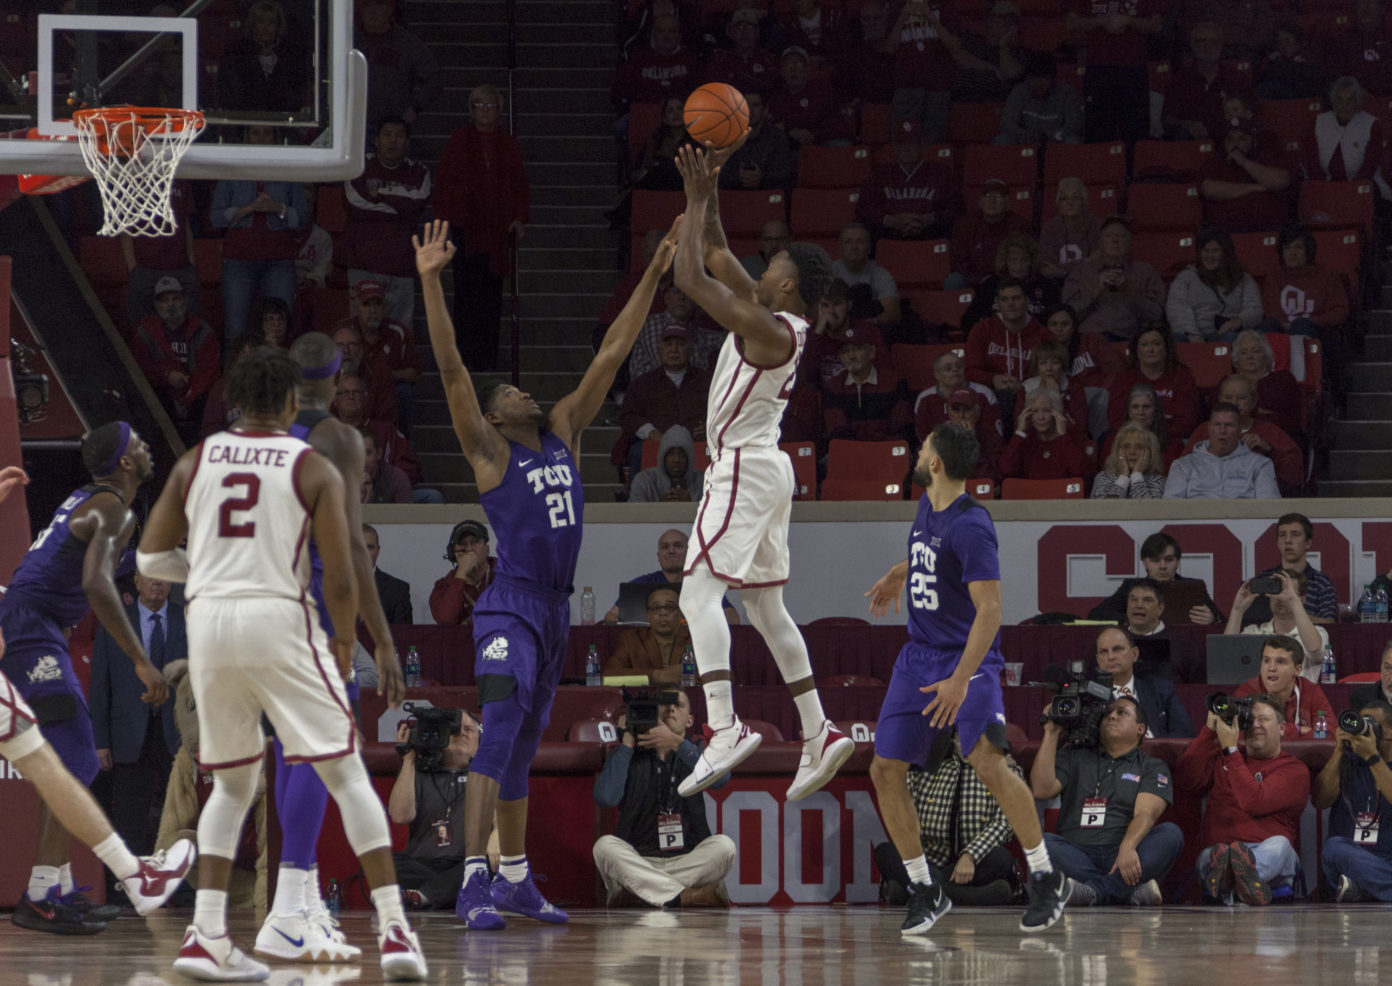 Noi's career-night all for naught against No. 23 Oklahoma, 76-74